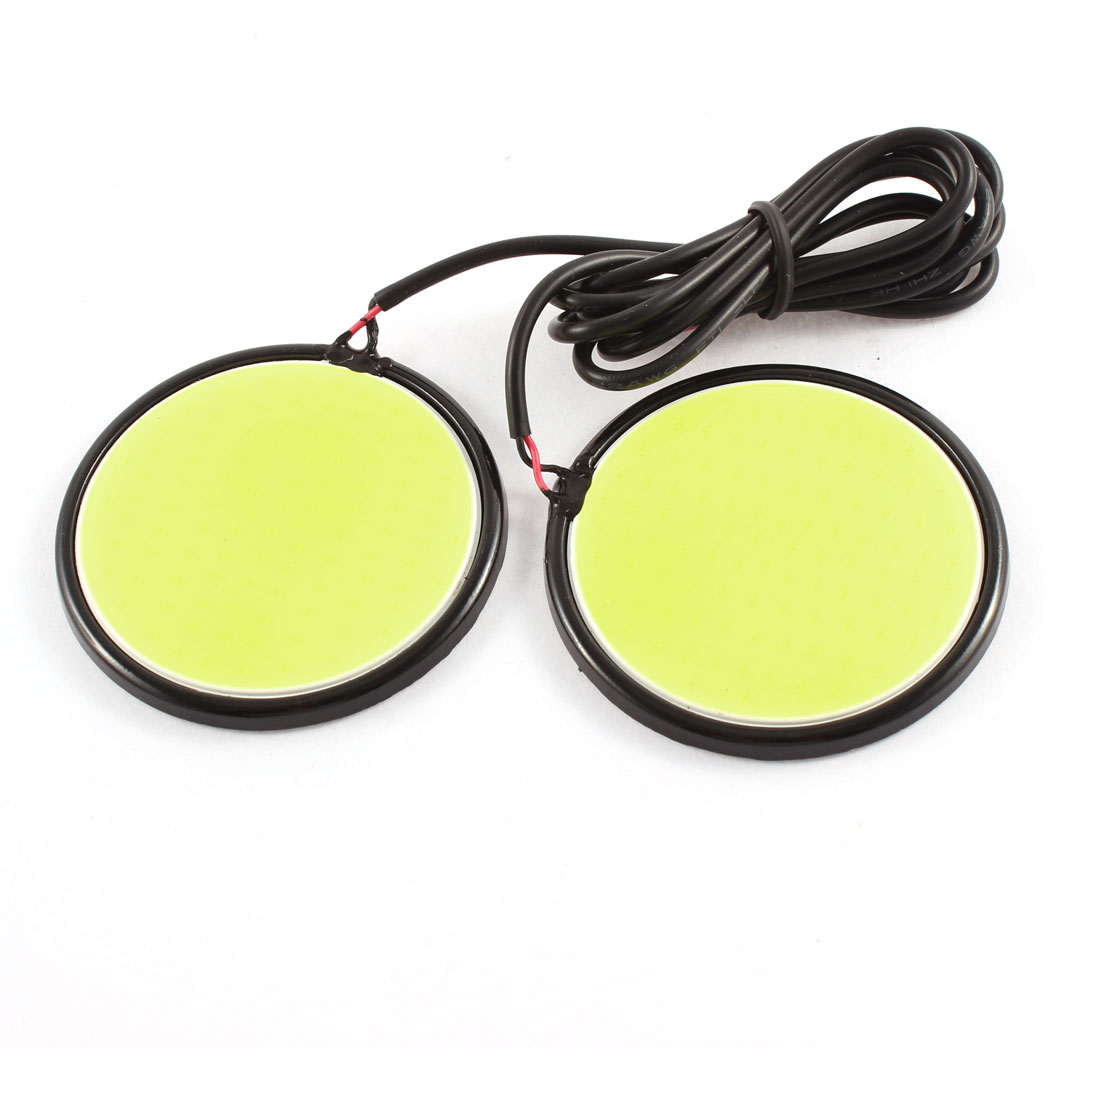 Pair Metal Round Shape White COB LED Car DRL Daytime Running Light